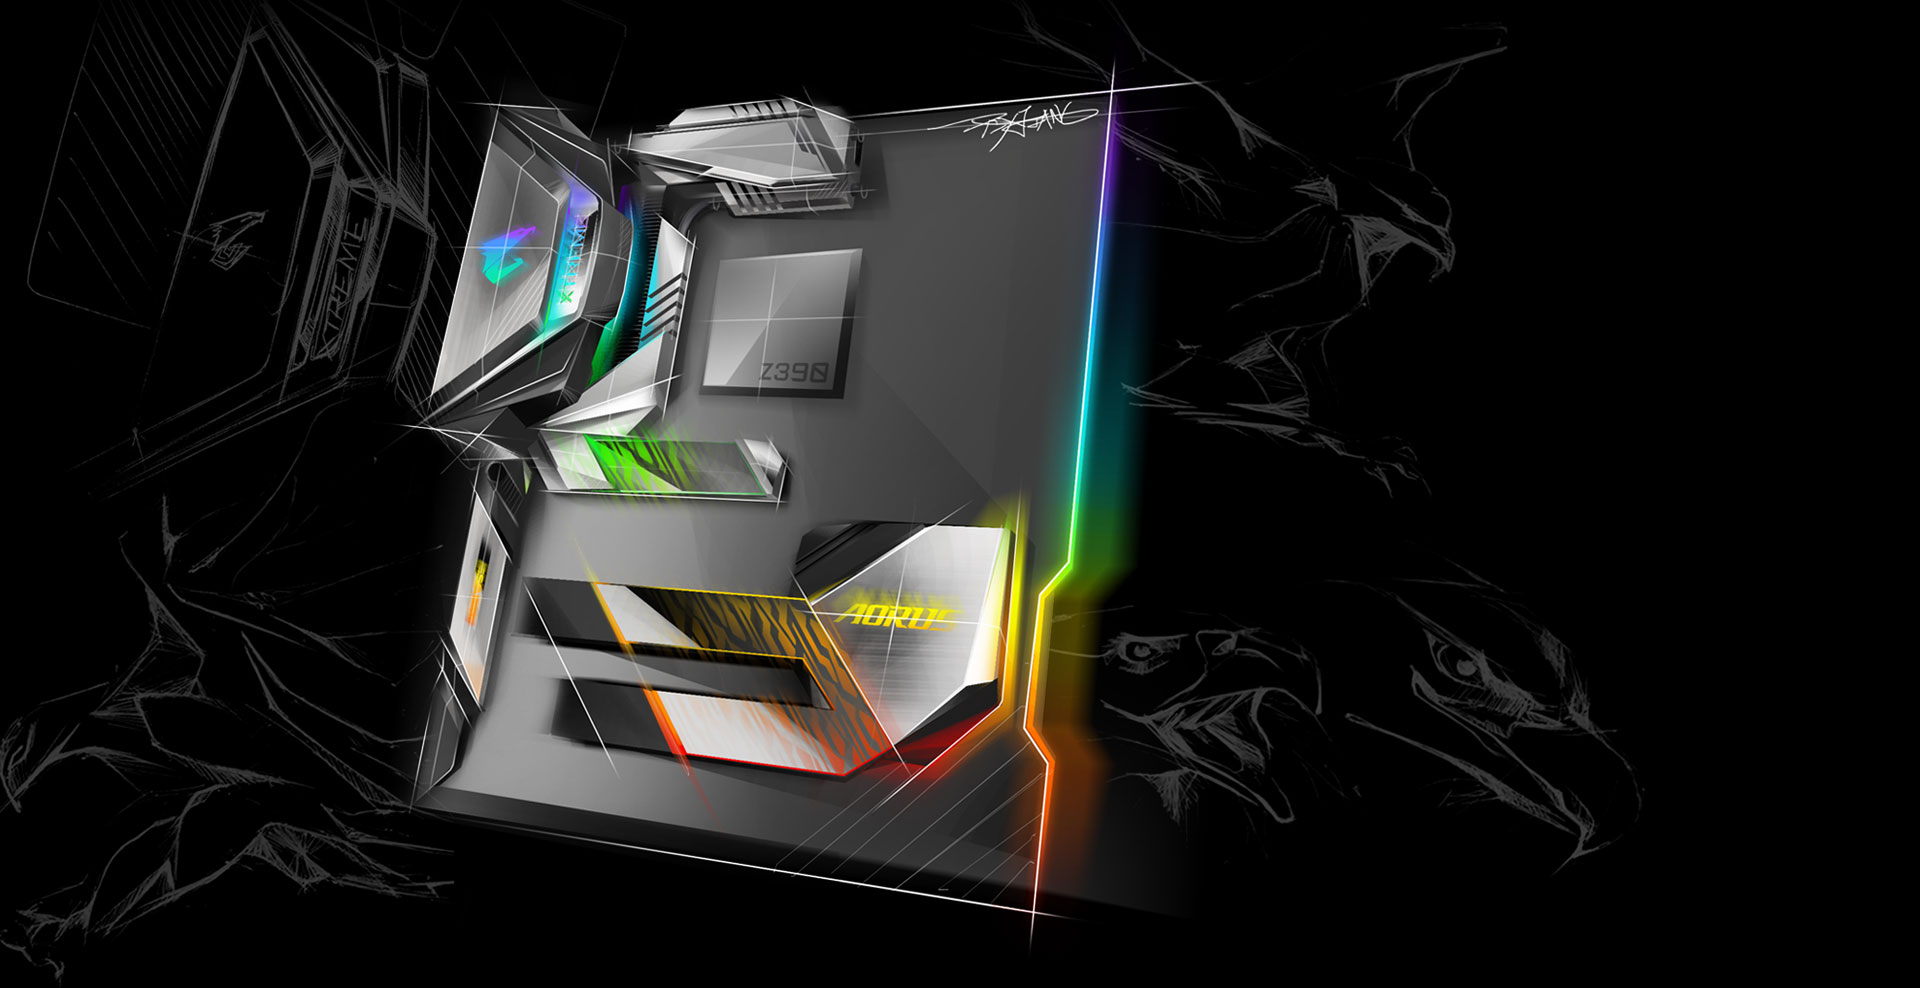 Z390 Aorus Xtreme Rev 10 Motherboard Gigabyte Global Performance Module Wiring Diagrams State Of The Art Aesthetics Sophisticated Thermal Design Next Generation Network Connectivity Hi Fi Level Audio System Is New